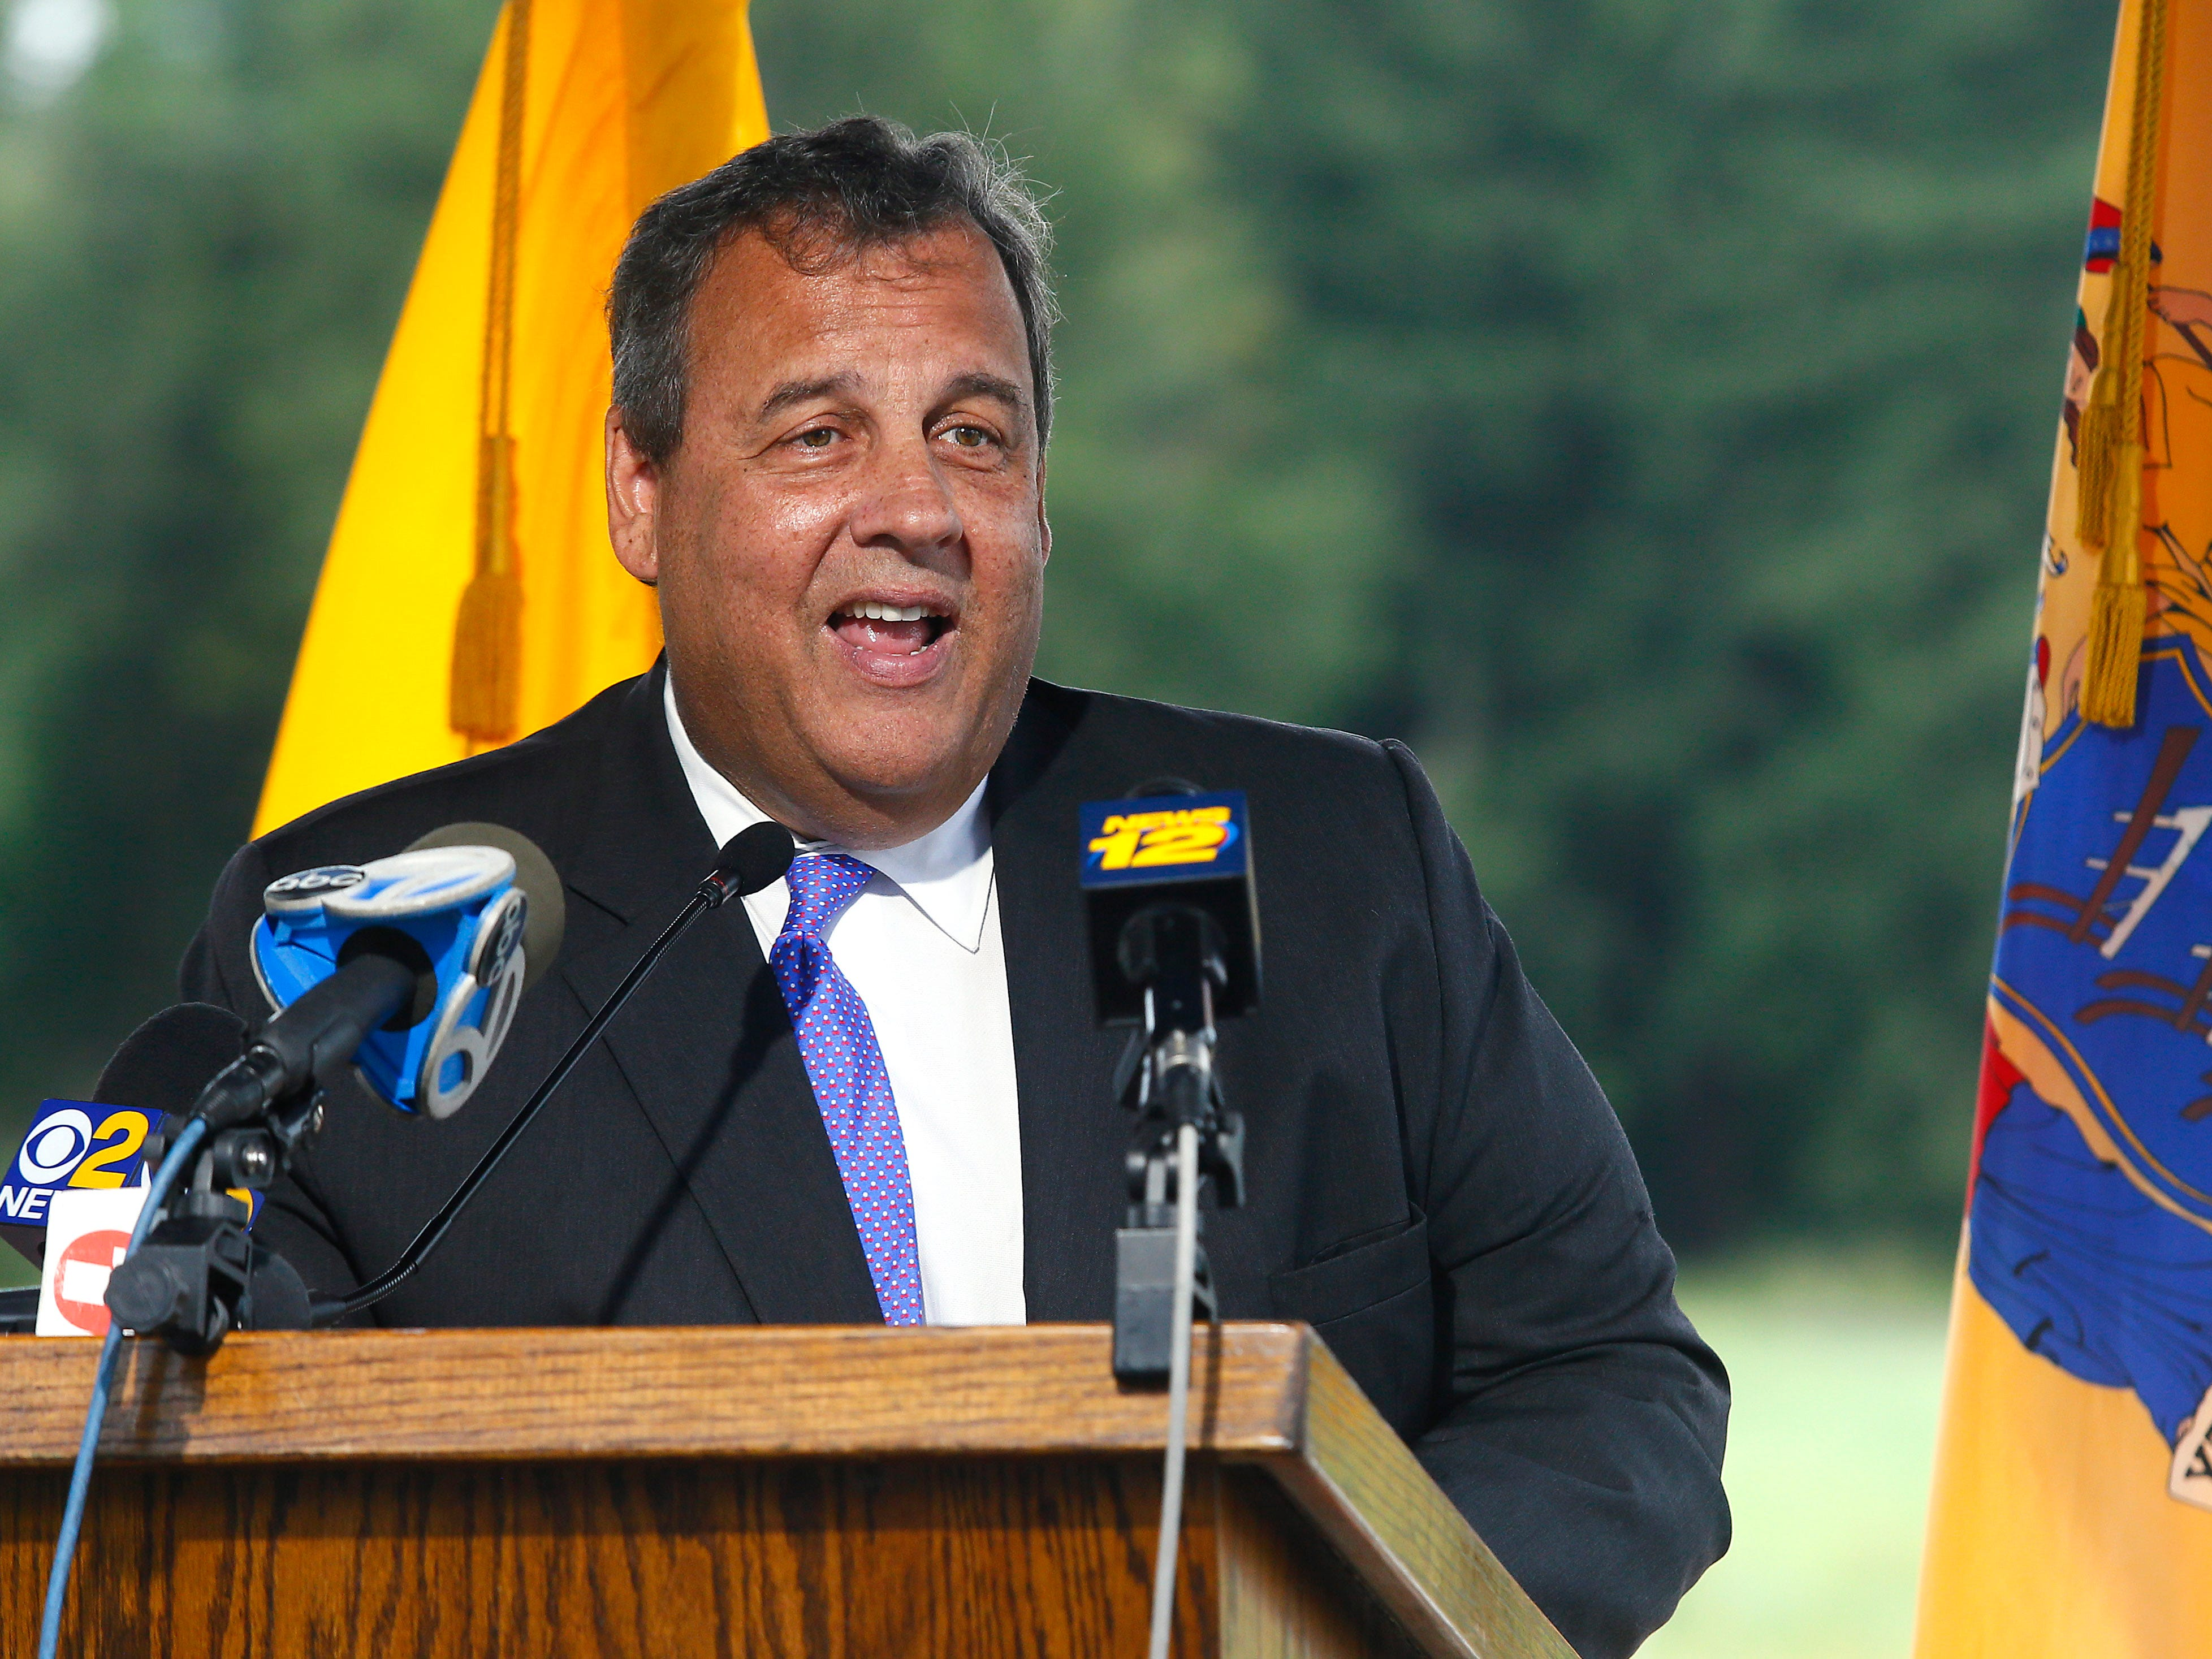 In this Sept. 12, 2018 photo, former New Jersey Gov. Chris Christie speaks at the opening of Gov. Chris Christie Drive, a new main access road in Morris Plains, NJ.